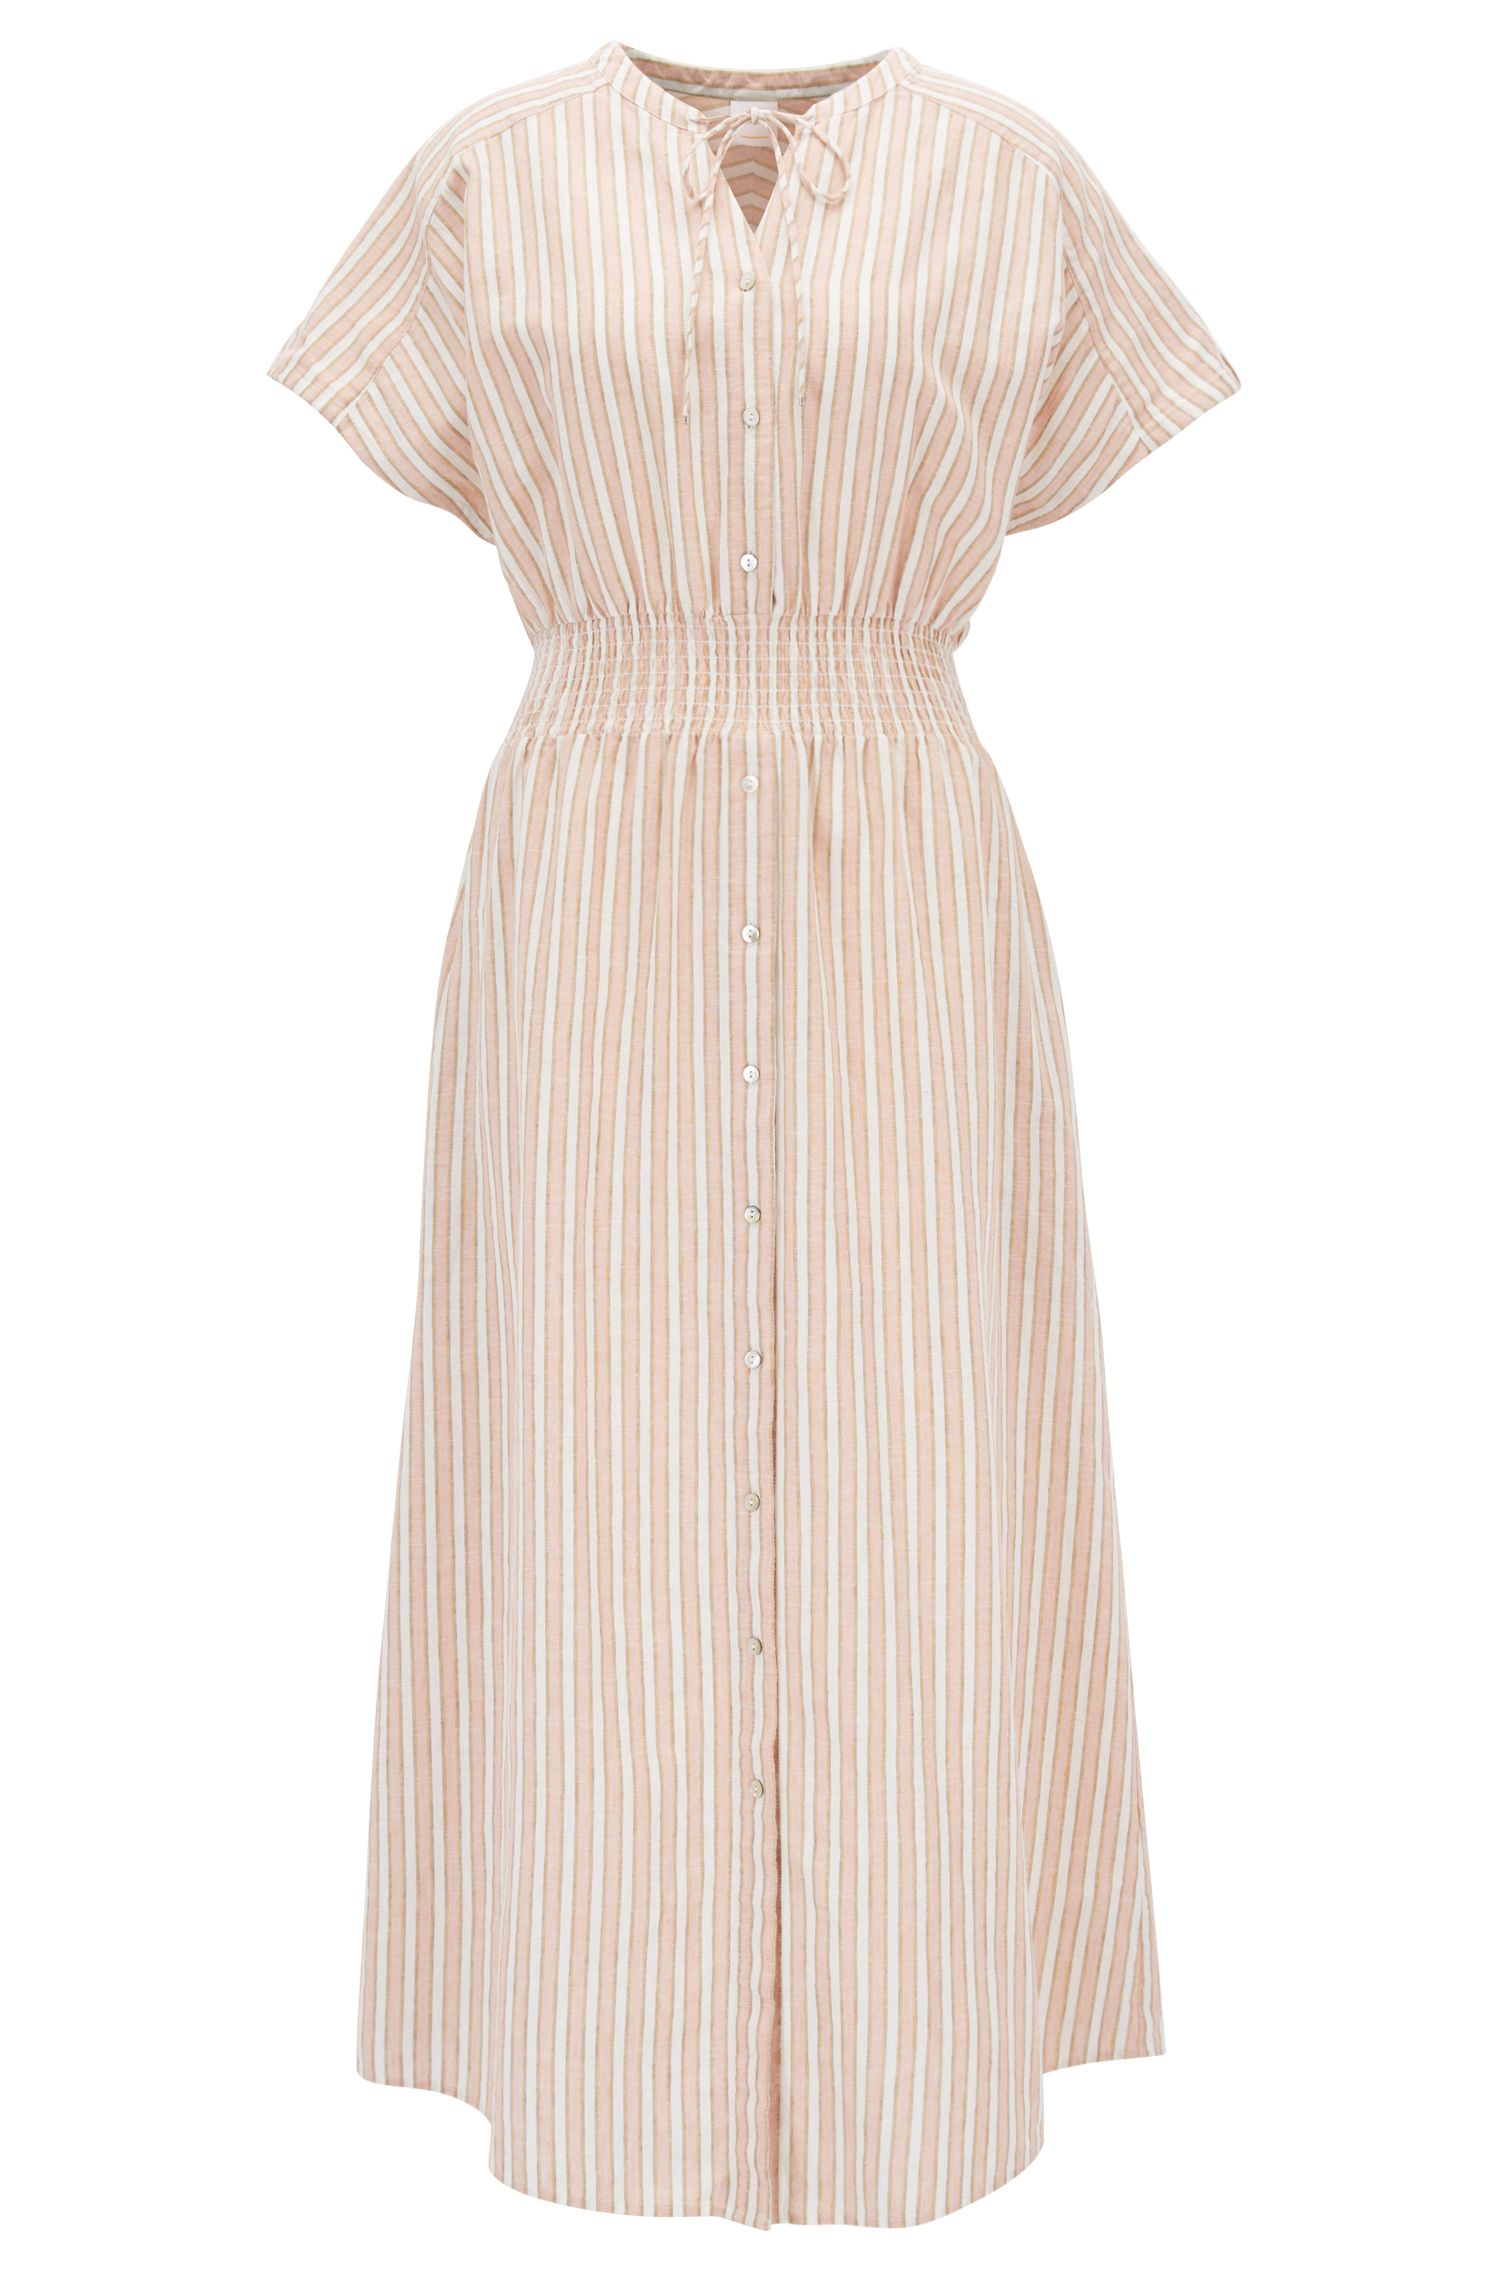 Linen-blend striped dress with smocked waist